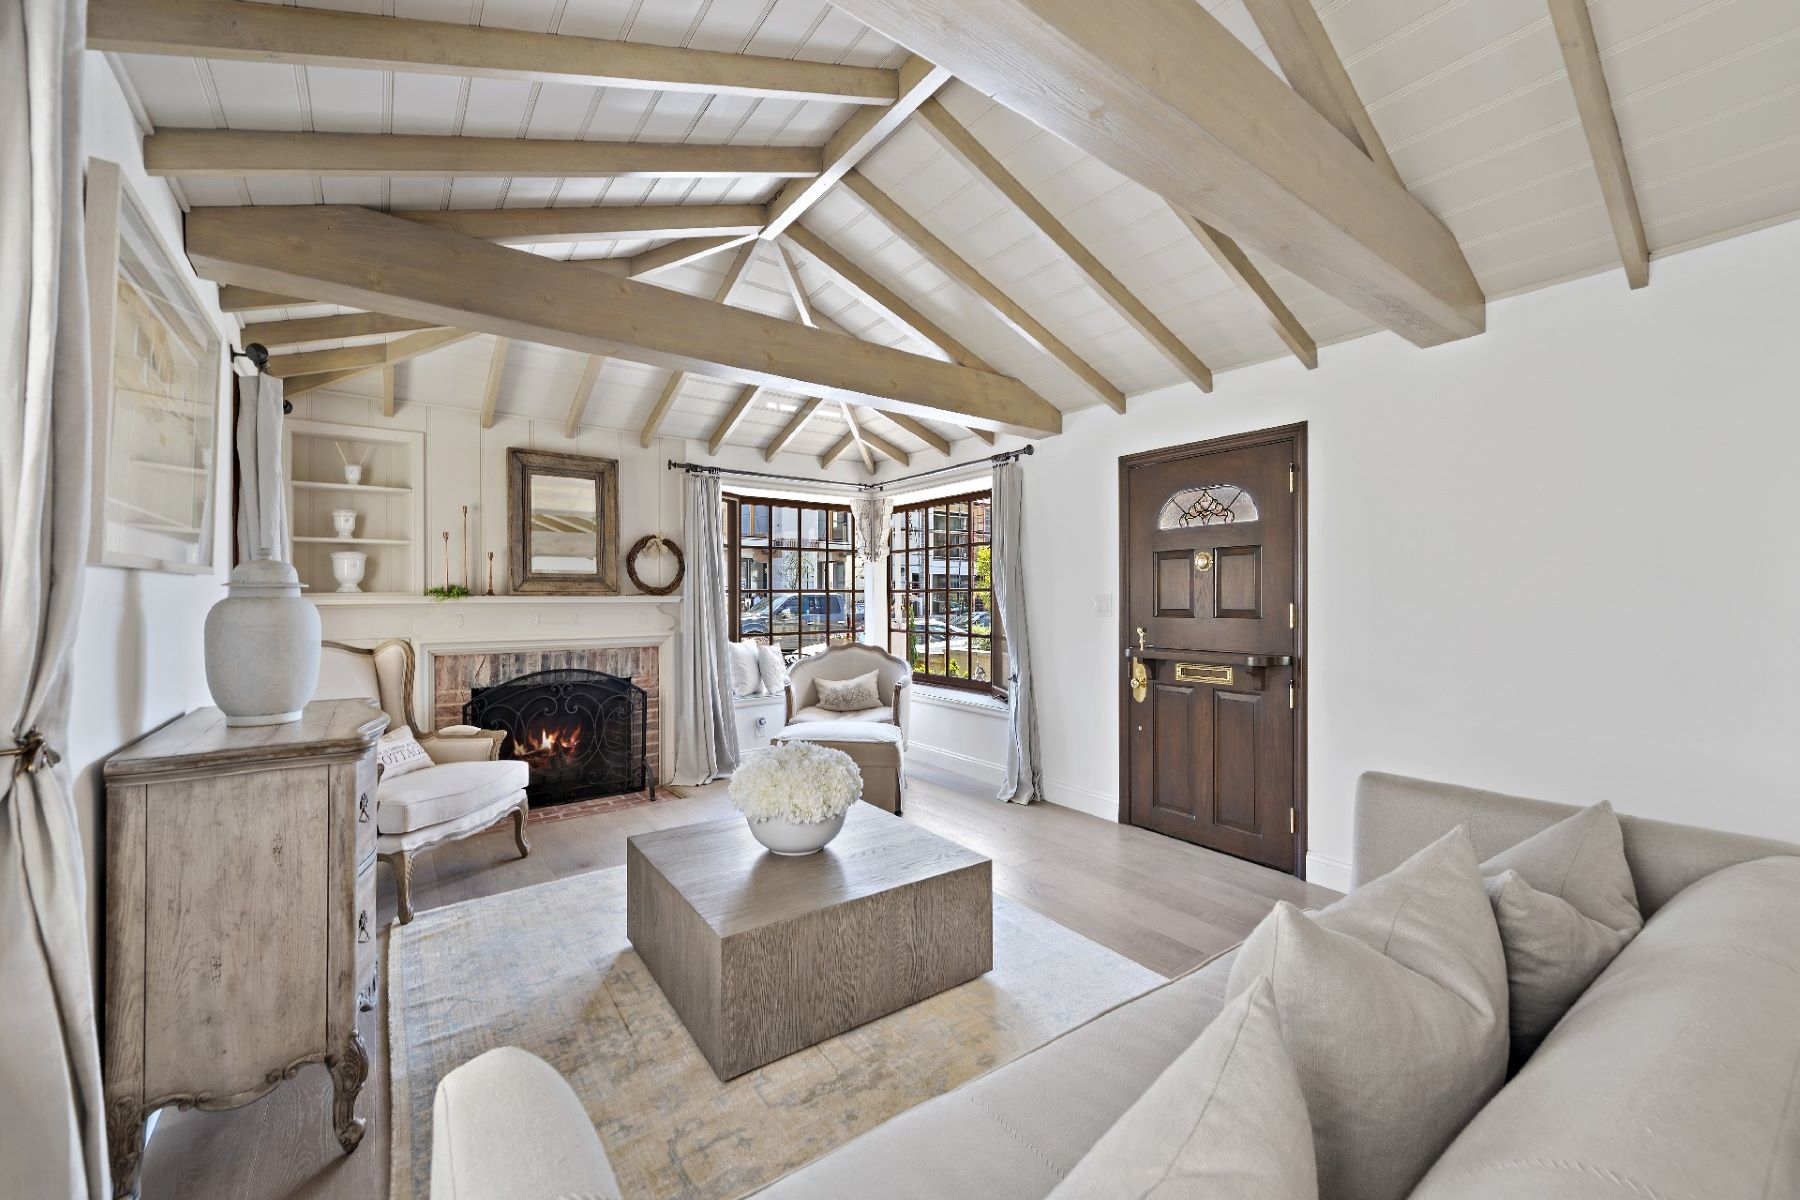 Single Family Homes for Active at 207 Emerald Avenue, Newport Beach, CA 92662 207 Emerald Ave Newport Beach, California 92662 United States